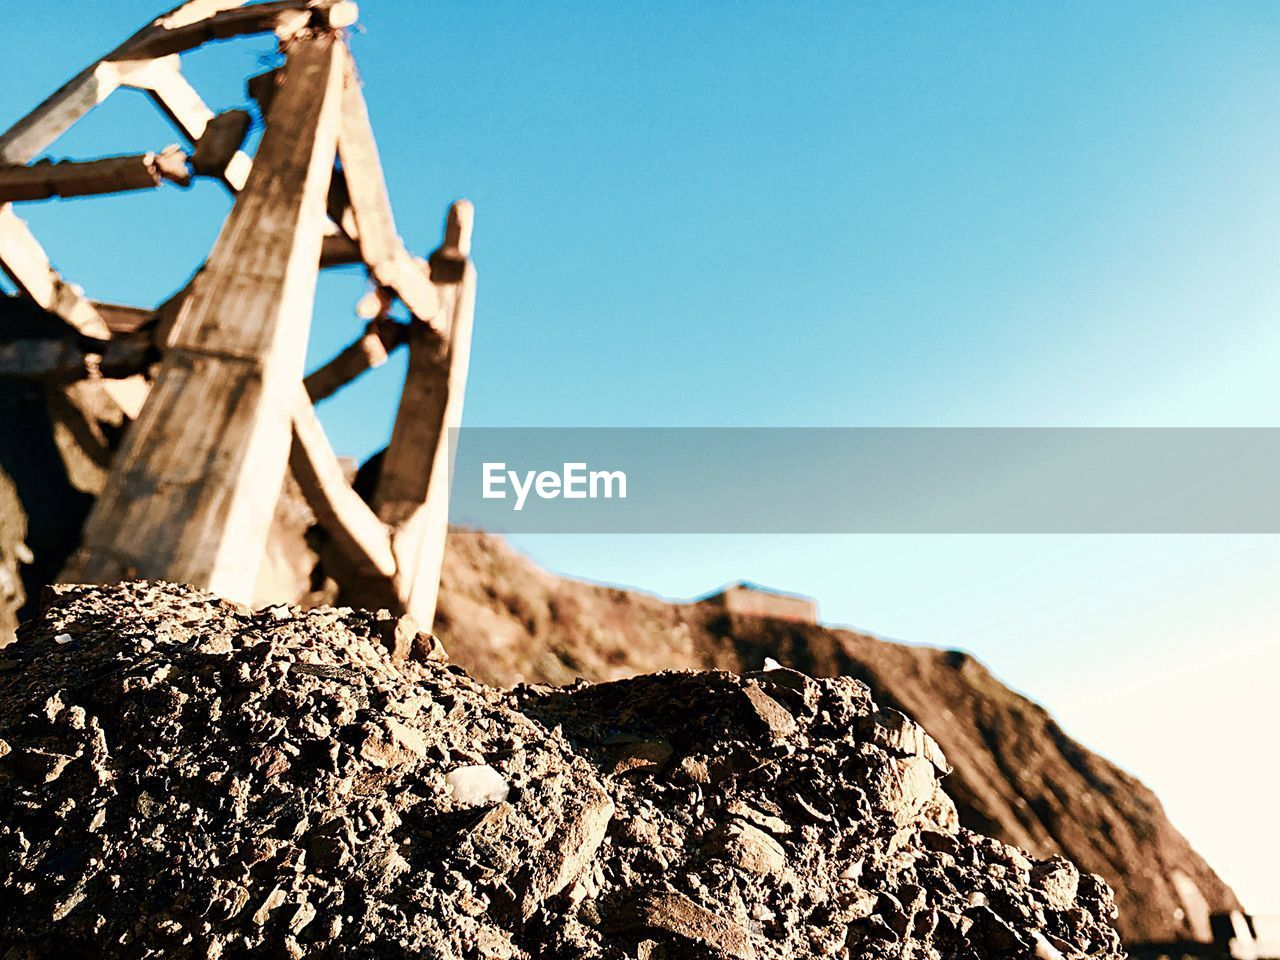 wood - material, clear sky, day, no people, outdoors, sunlight, low angle view, nature, tree stump, close-up, blue, sky